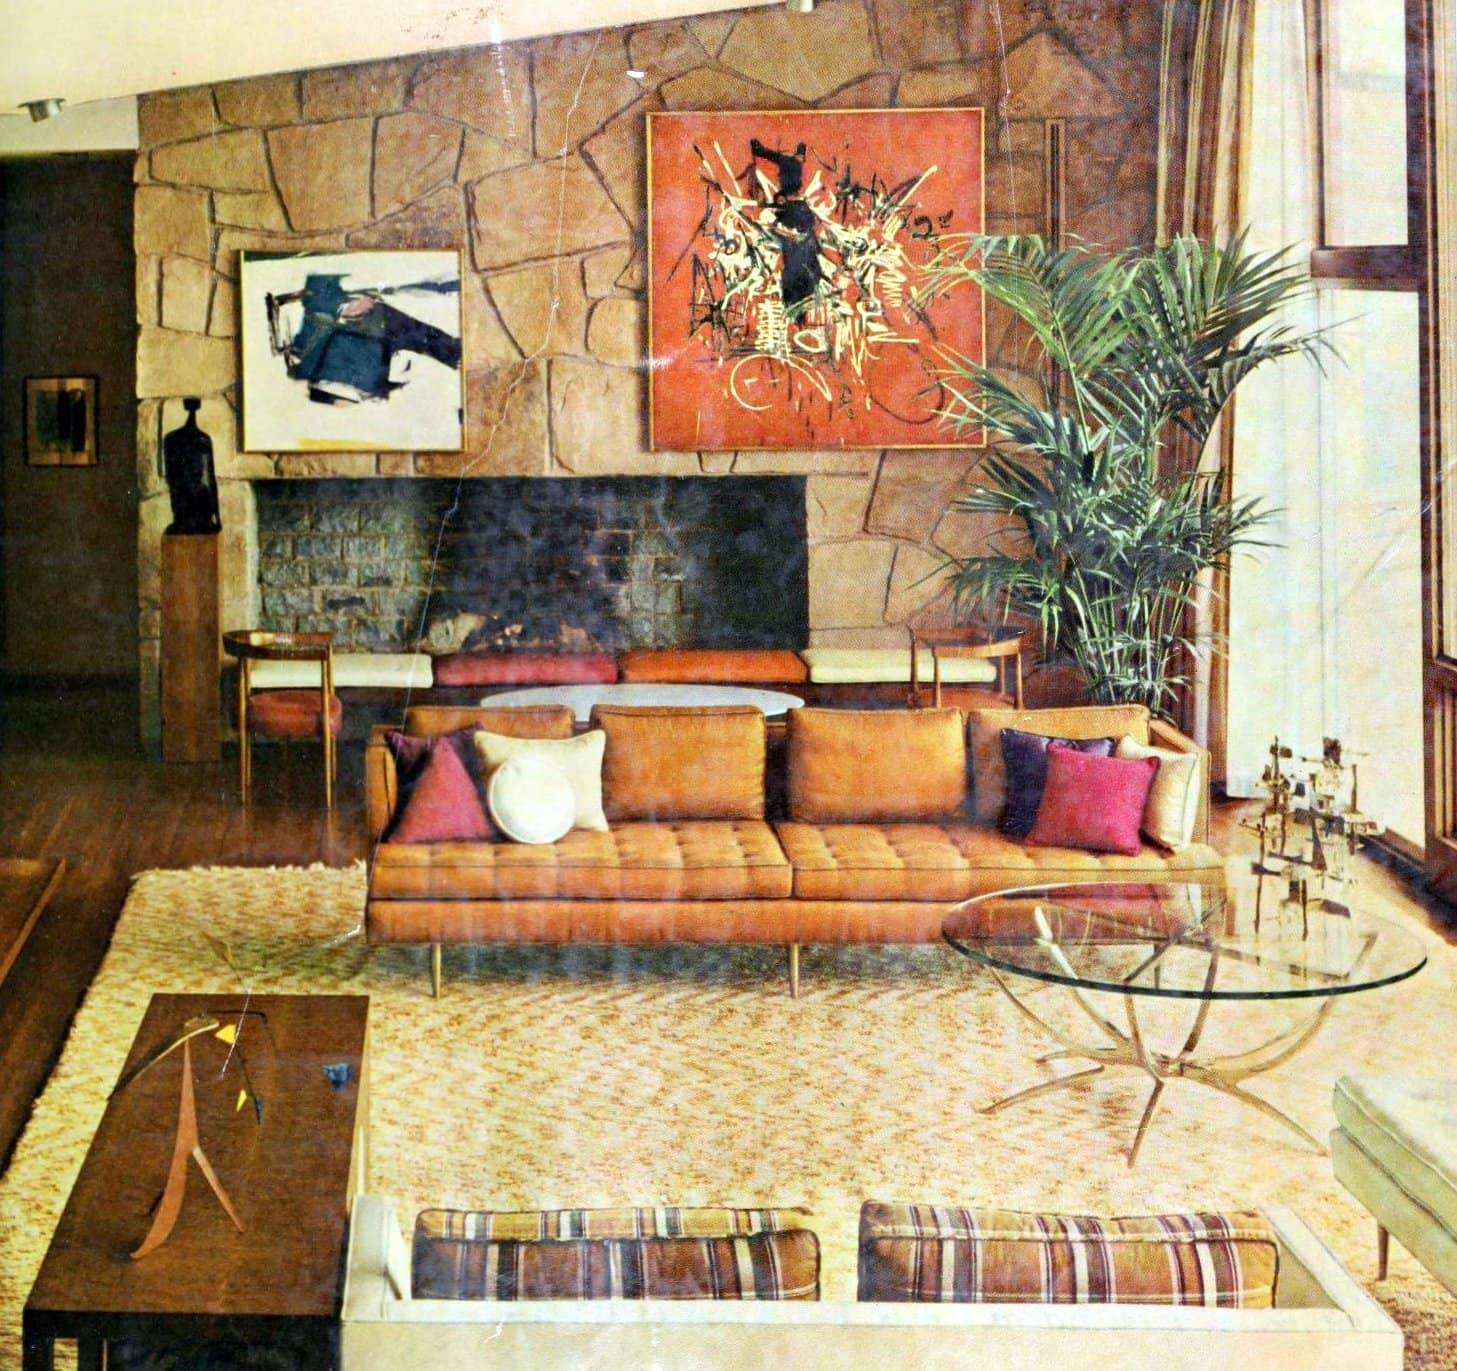 Sleek midcentury modern furniture in this early 1960s living room